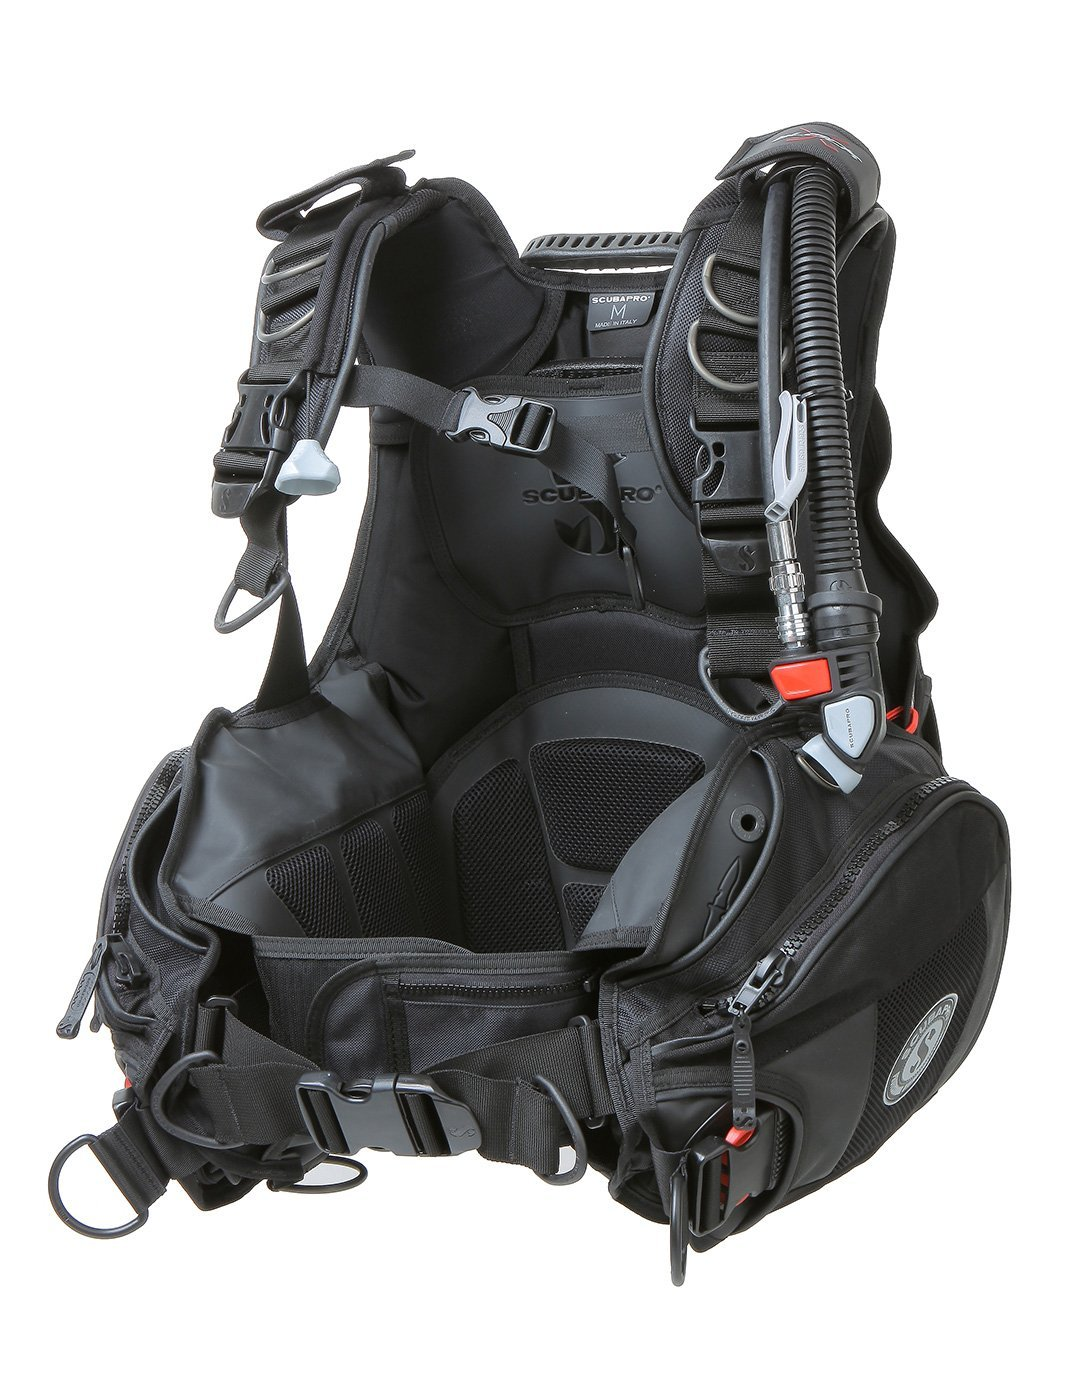 X-Black V Gen BCD with Air2 by ScubaPro, Black